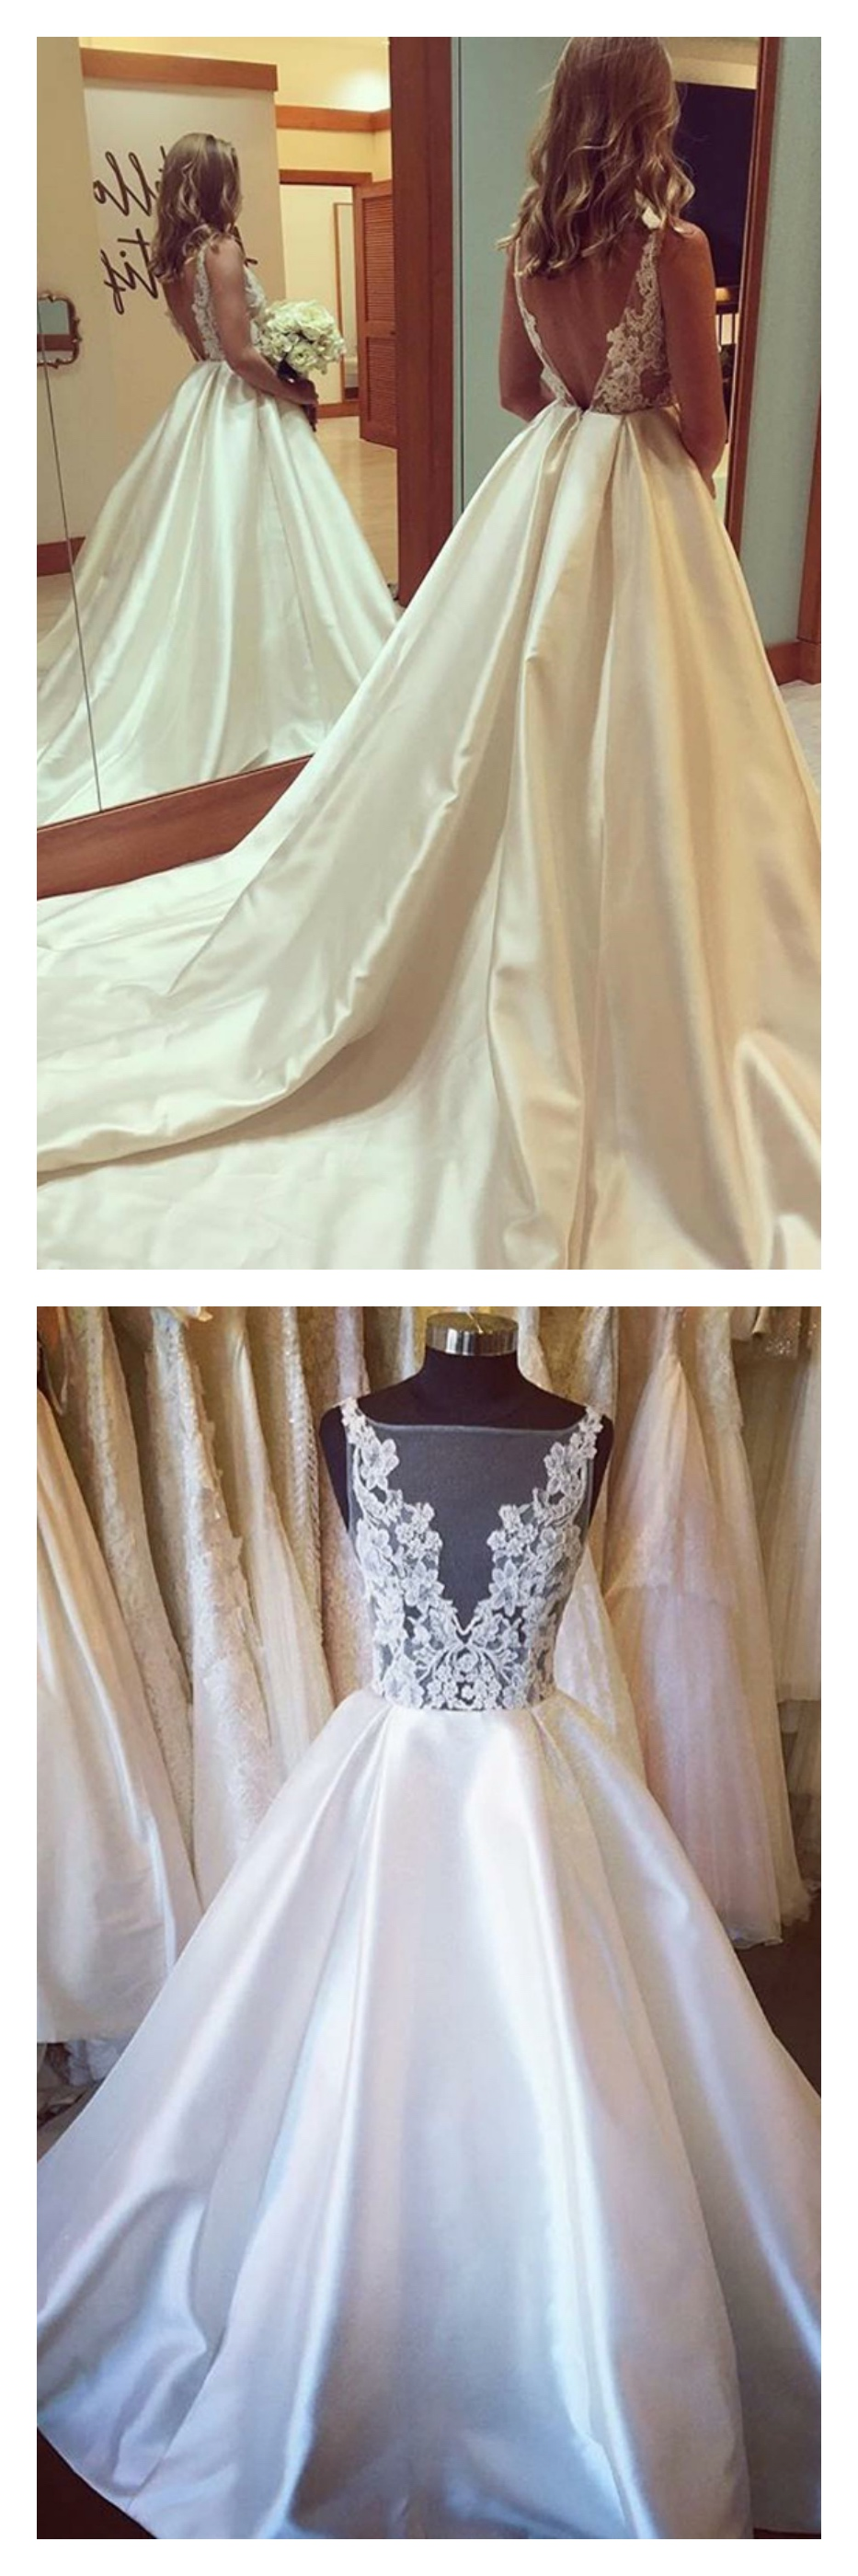 Satin backless wedding dress  Large Vneck Sheath Sweep Train Wedding Dress with Beaded WD